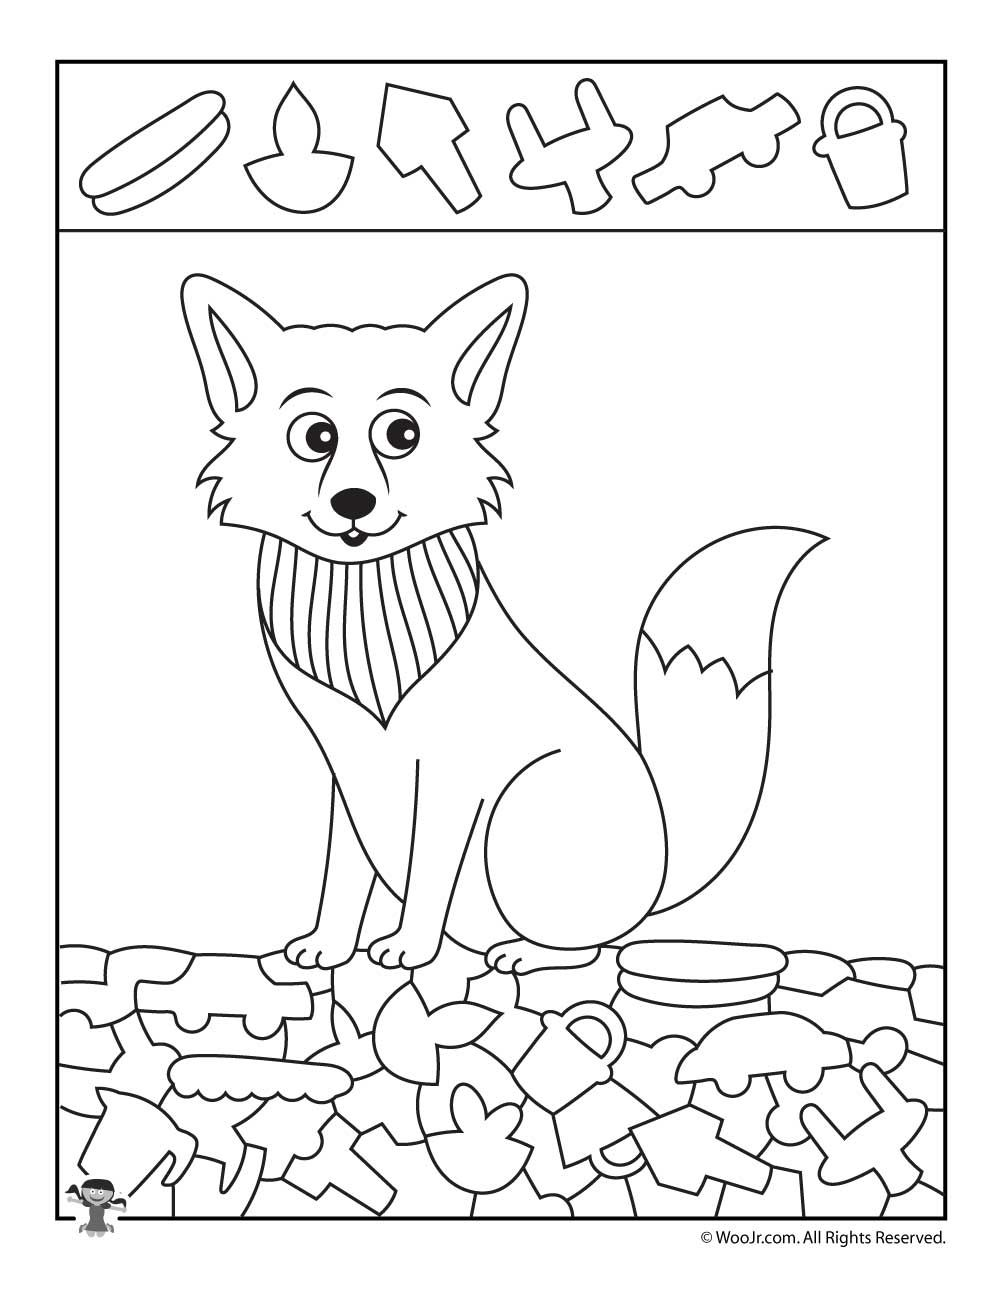 Arctic Fox Hidden Picture Coloring Page | Pinterest | Arctic fox ...